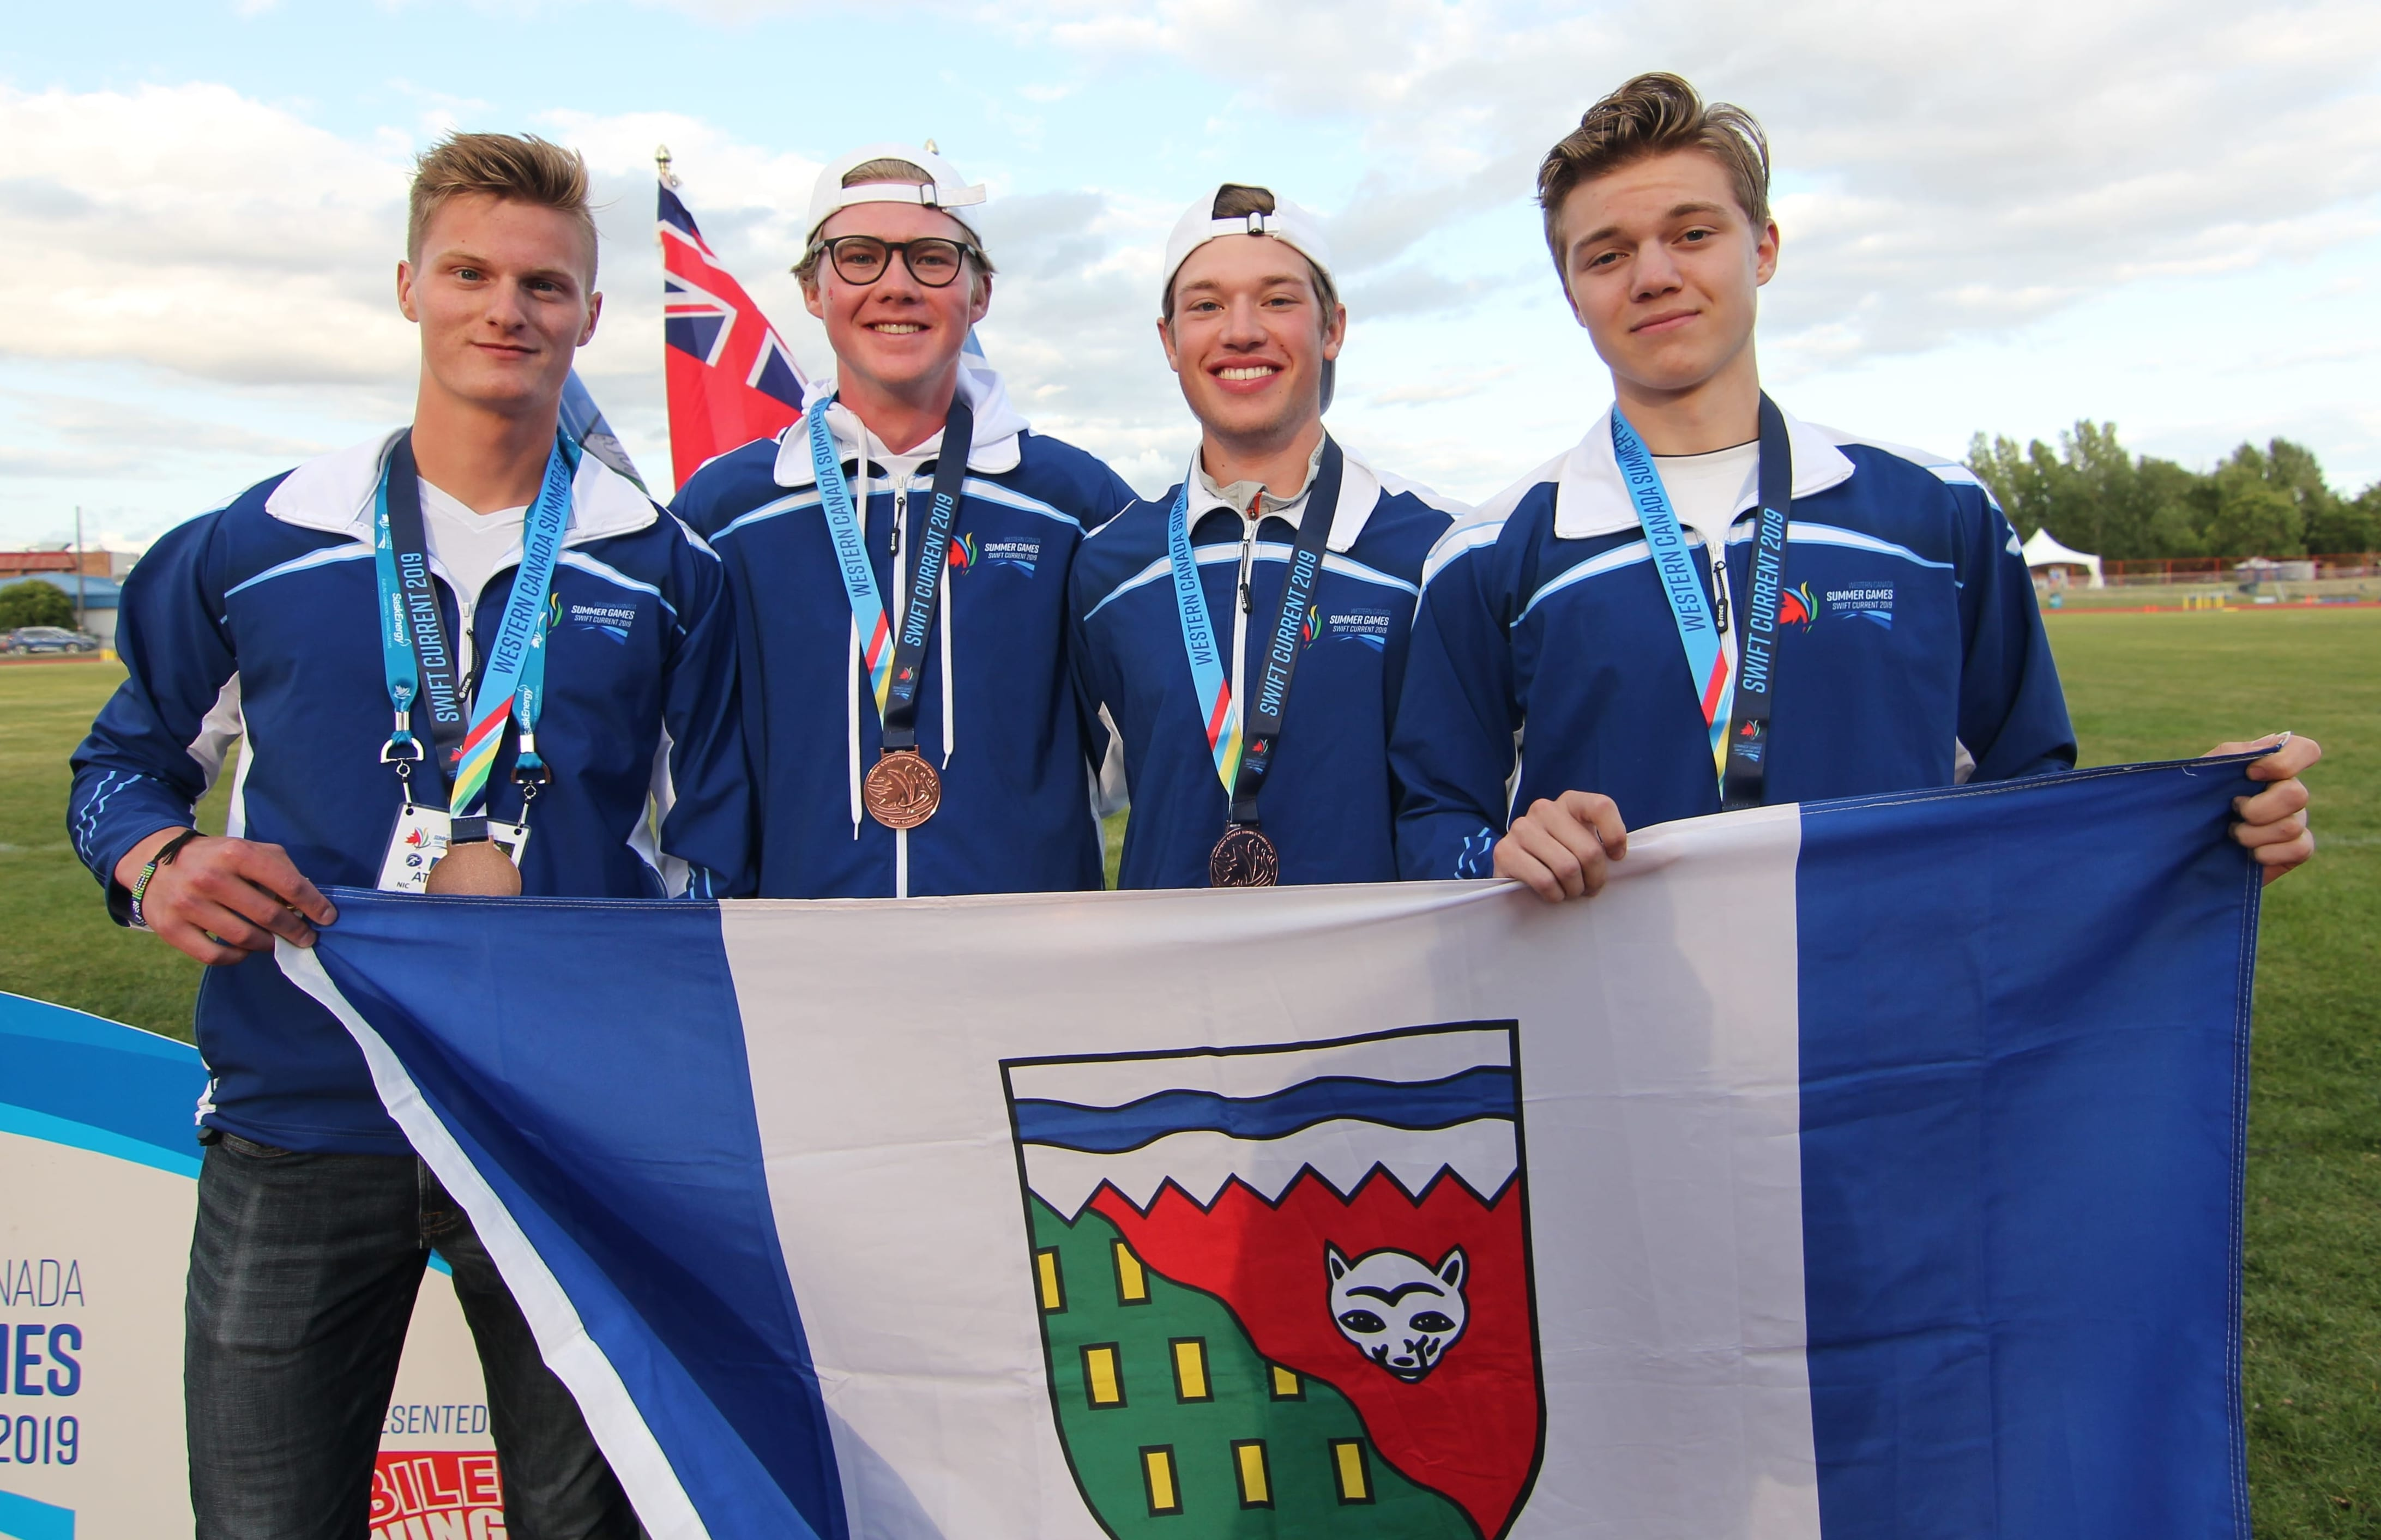 Nicolas Bennett of Yellowknife, left, Zachary Horton of Hay River, Bryce Smith of Hay River and Stryden Hult-Griffin of Inuvik captured a bronze medal for Team NT in the boys medley relay in track and field at the Western Canada Summer Games in Swift Current, Alta., on Saturday. photo courtesy of Rob Hart